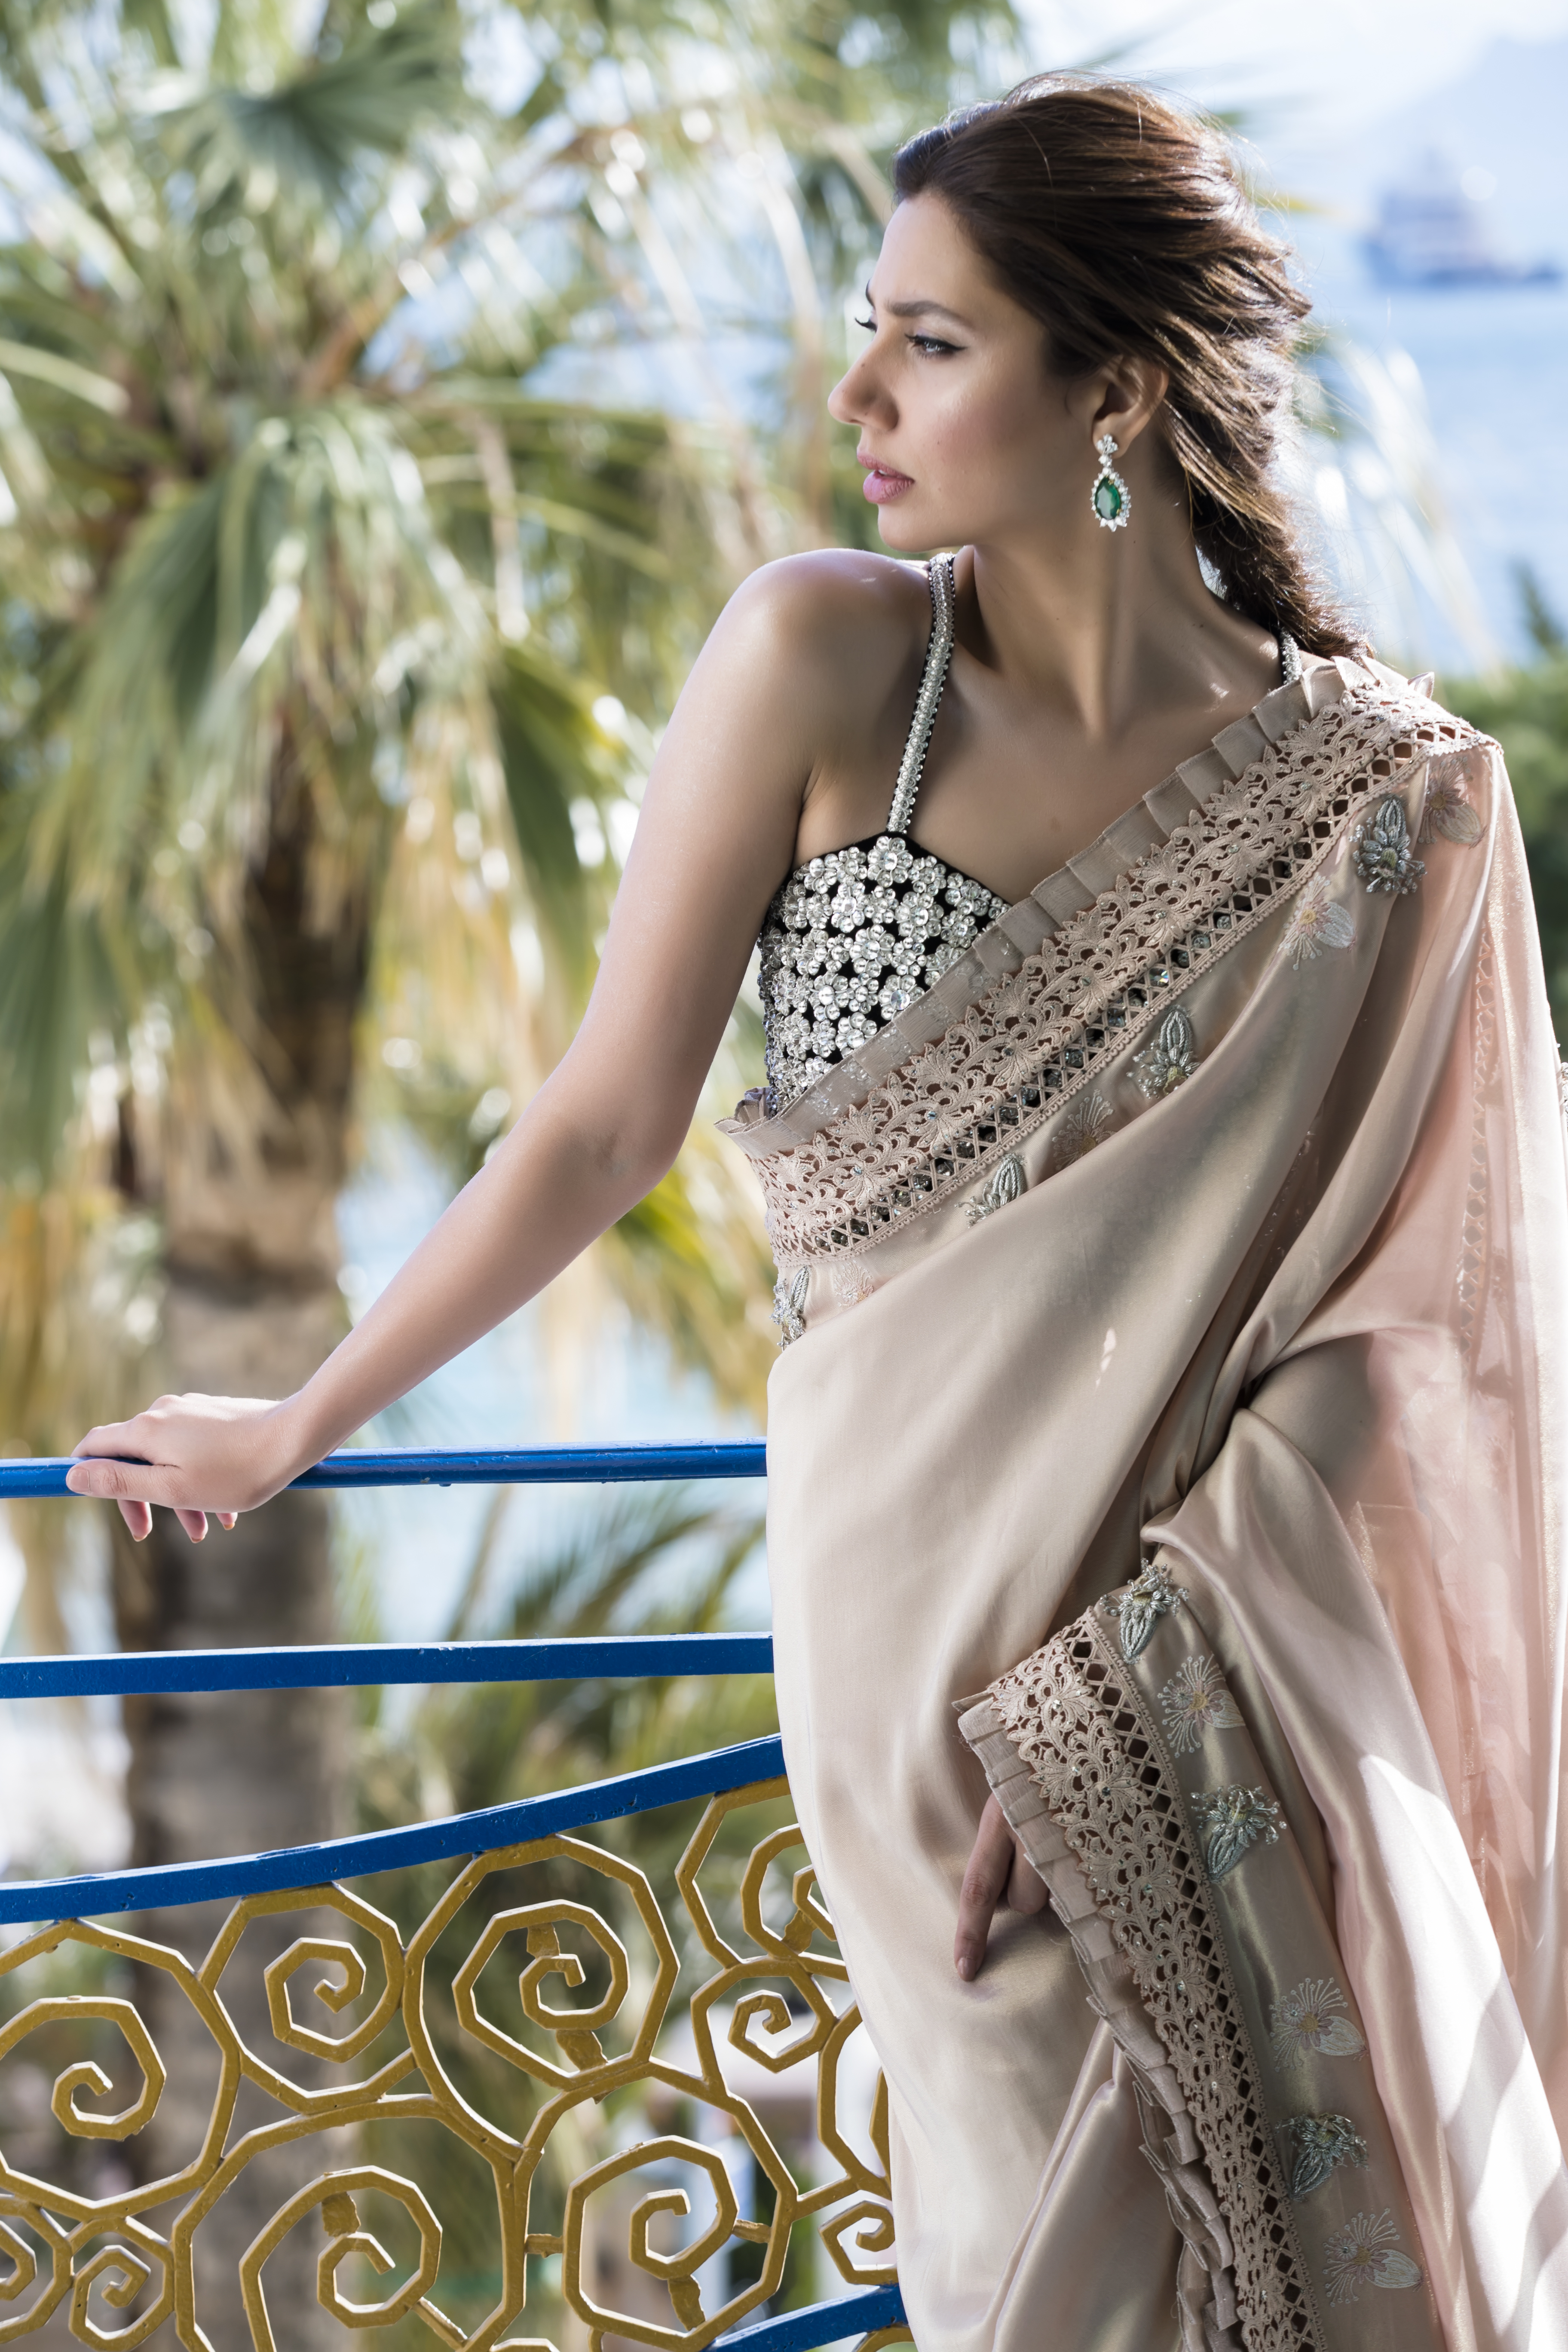 L'Oreal Paris Pakistan Hair Care Spokesperson Mahira Khan in Cannes wearing sari by Menahel and Mehreen